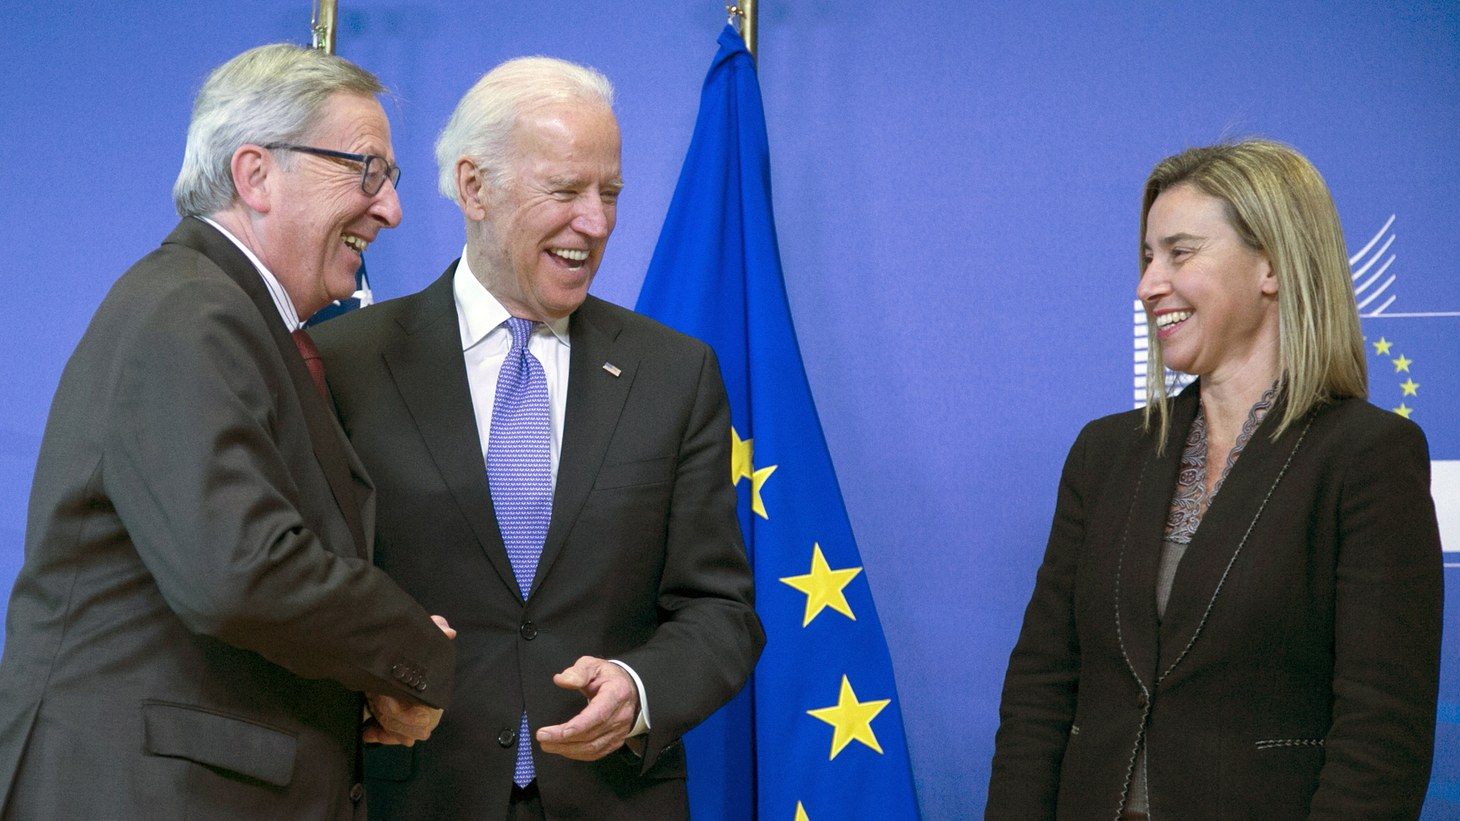 Feb. 6, 2015: European Commission President Jean-Claude Juncker (L) and European Union foreign policy chief Federica Mogherini (R) welcome U.S. Vice President Joe Biden at the EU Commission headquarters in Brussels. Biden said on Friday that the United States and Europe needed to stand together over Ukraine and accused Russian President Vladimir Putin of calling for peace while rolling his troops through Ukrainian countryside.